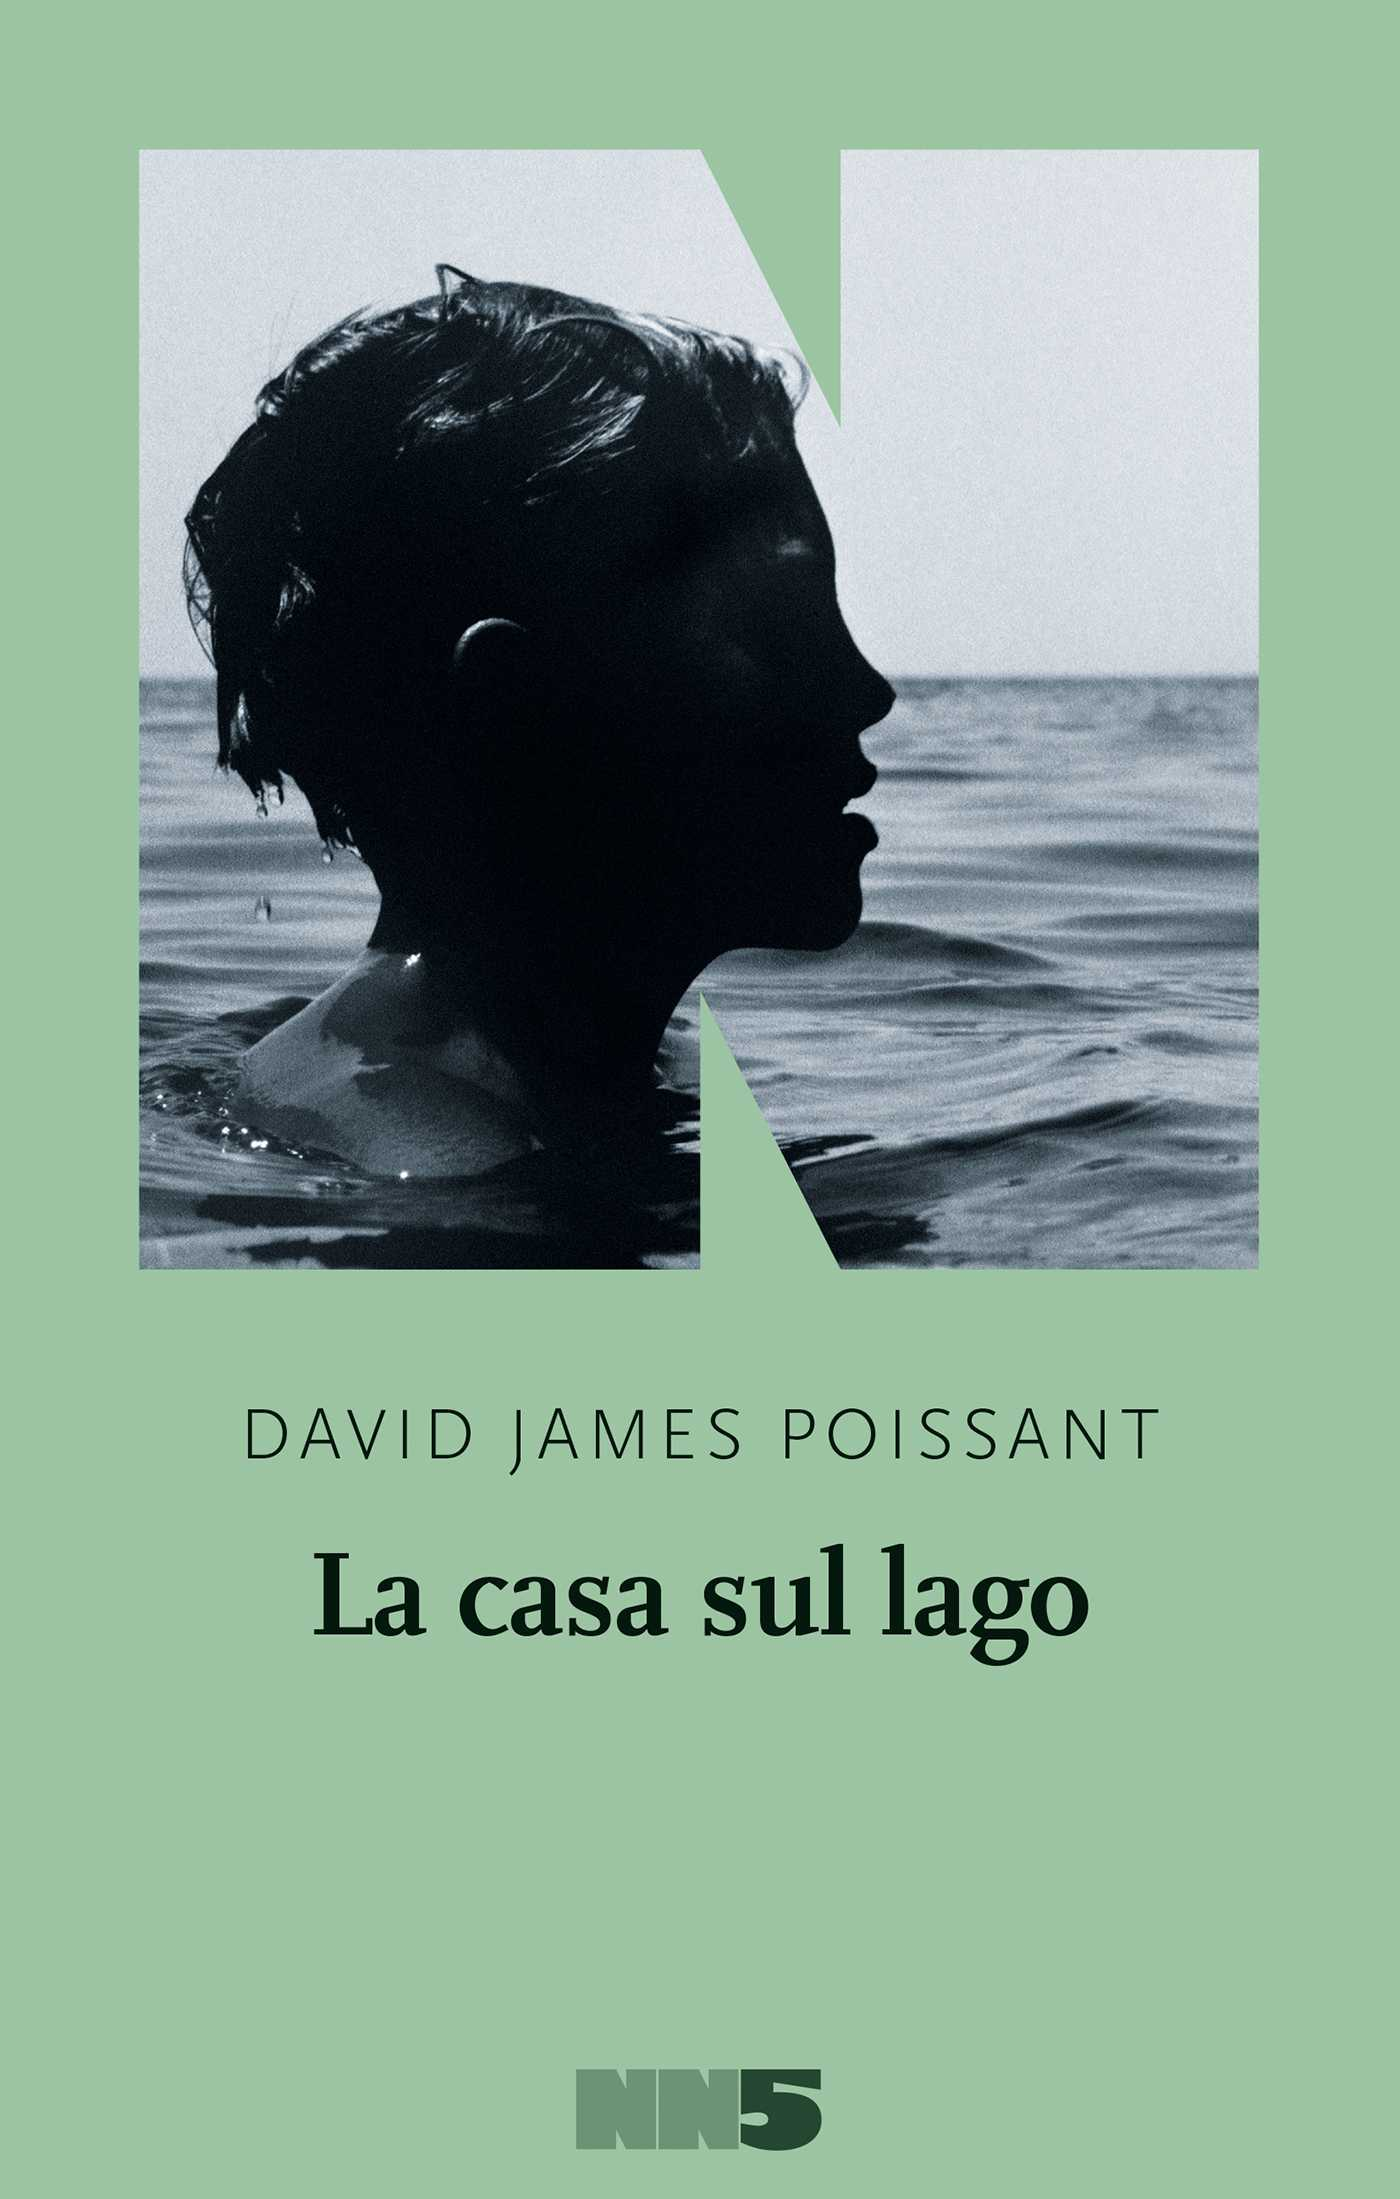 La casa sul lago - David James Poissant